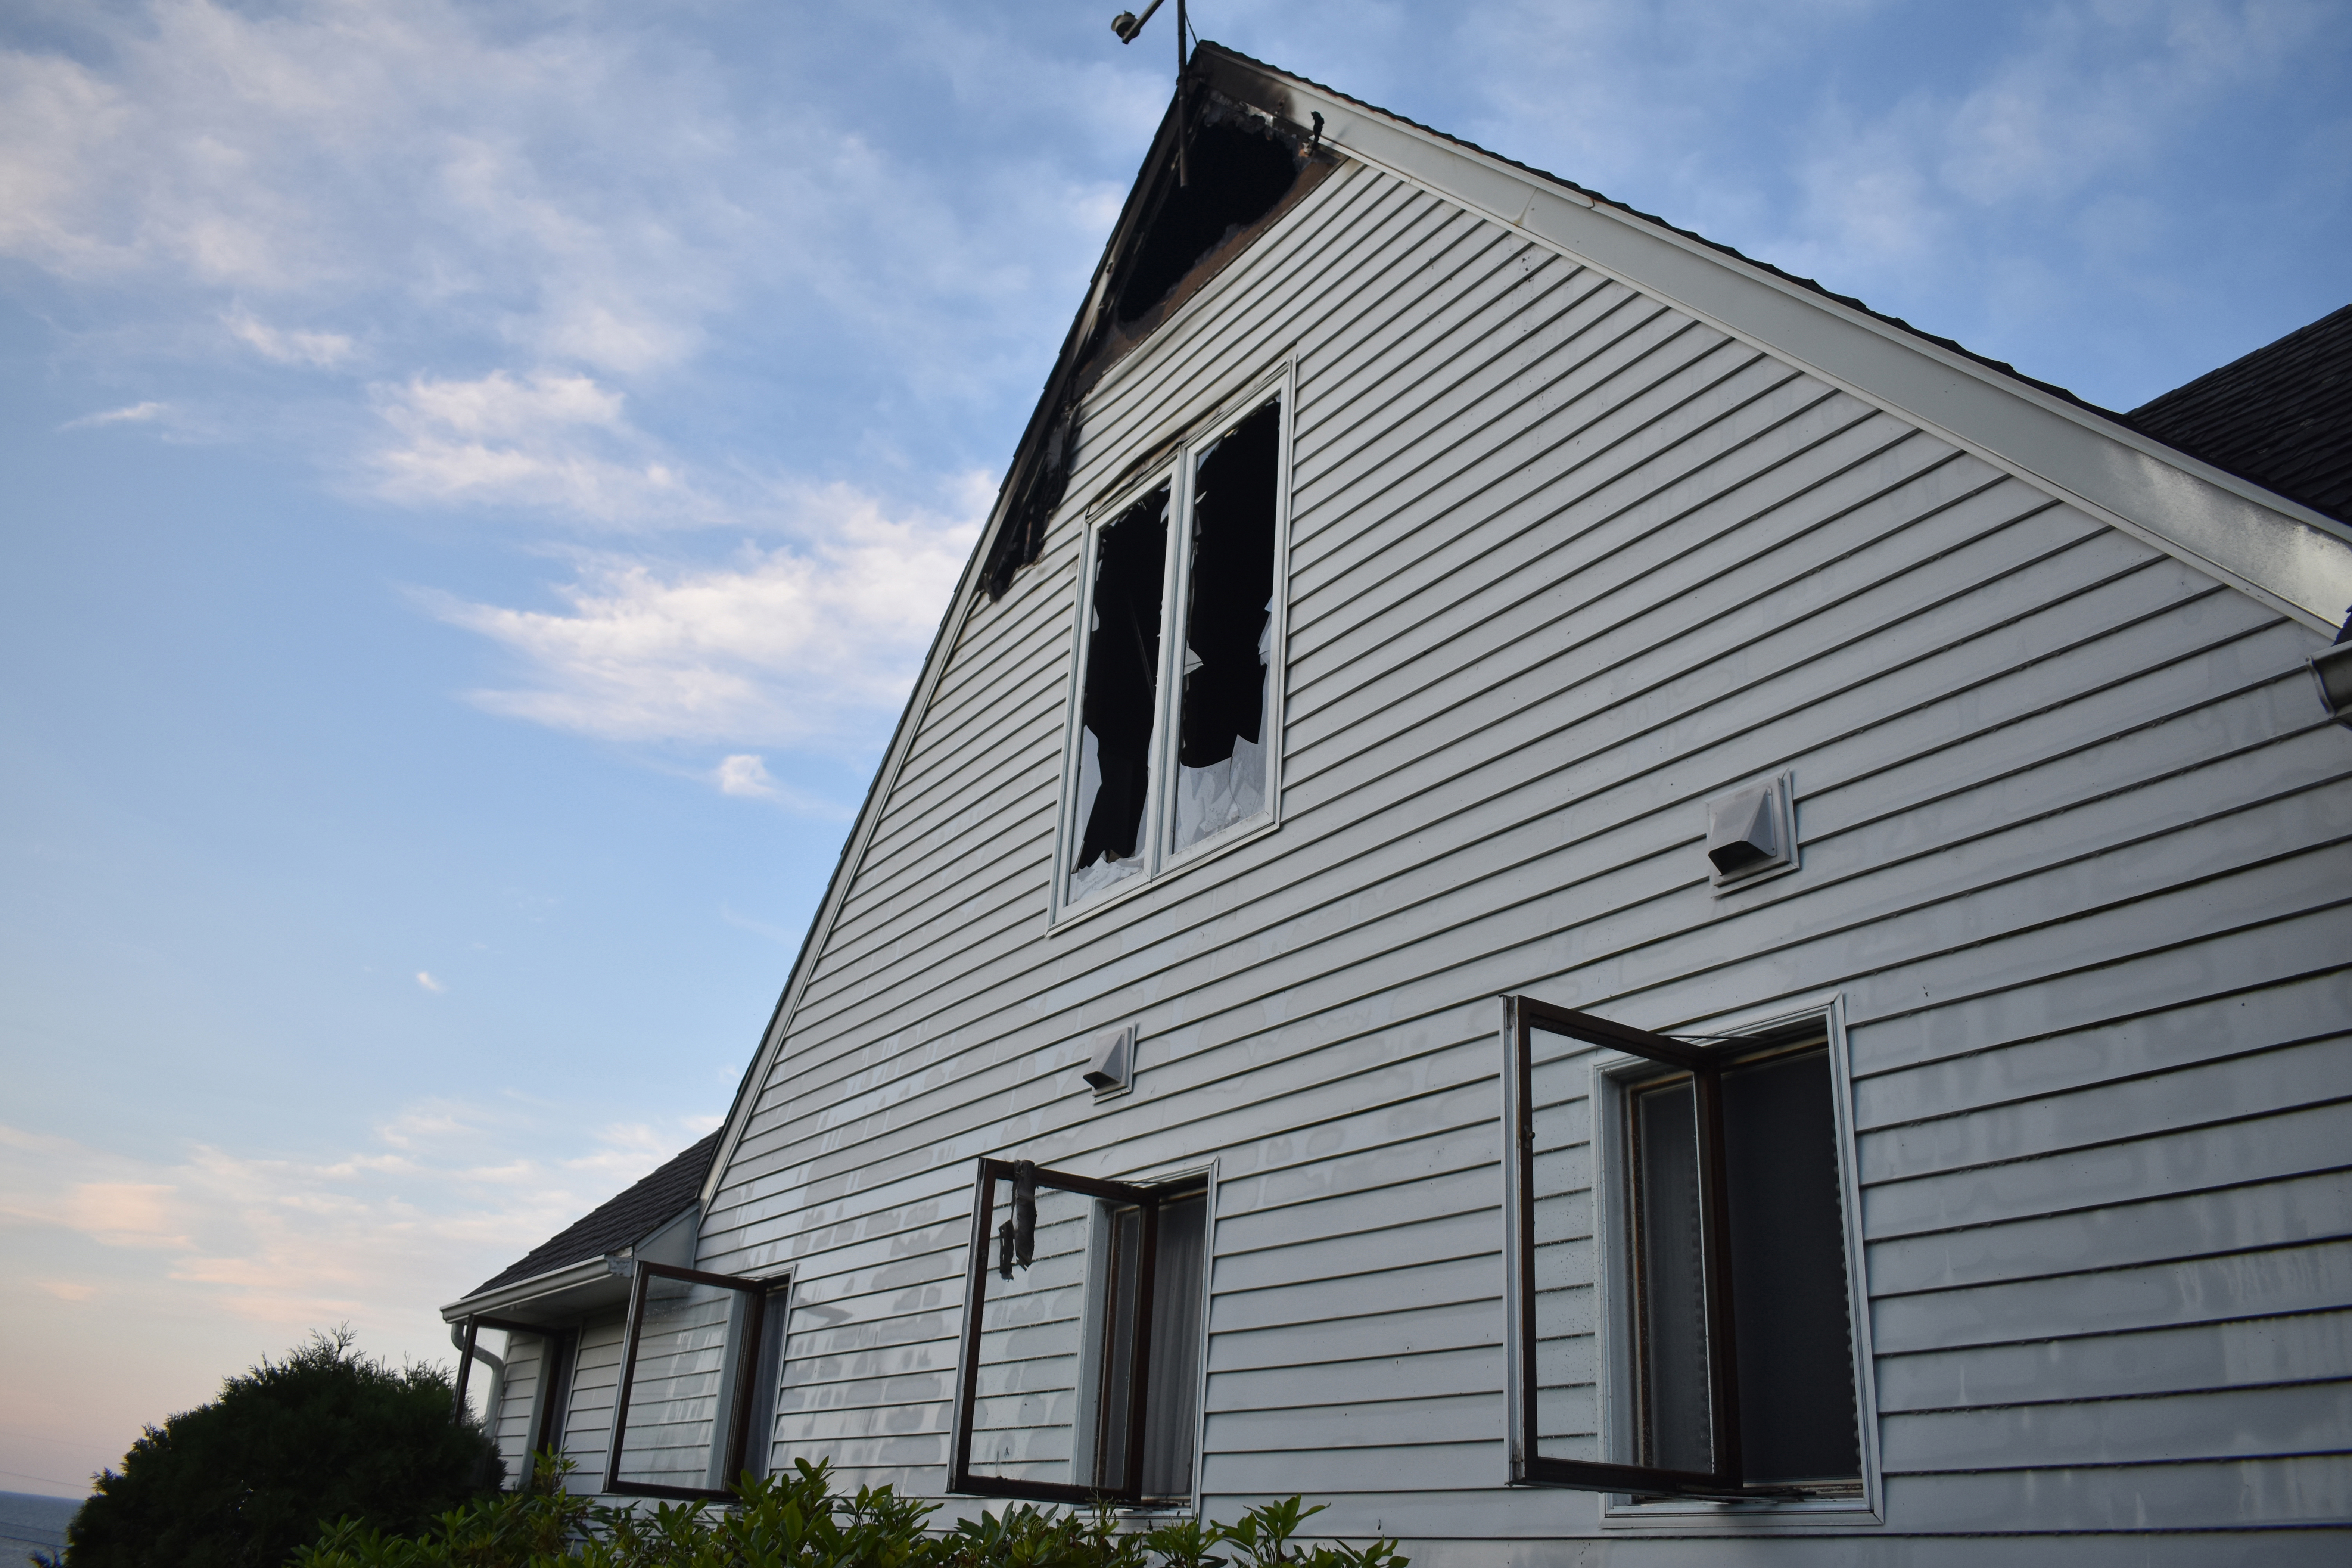 Fire damage is visible on an upper level of a home near Pemaquid Point in New Harbor early Monday, July 15. (Alexander Violo photo)